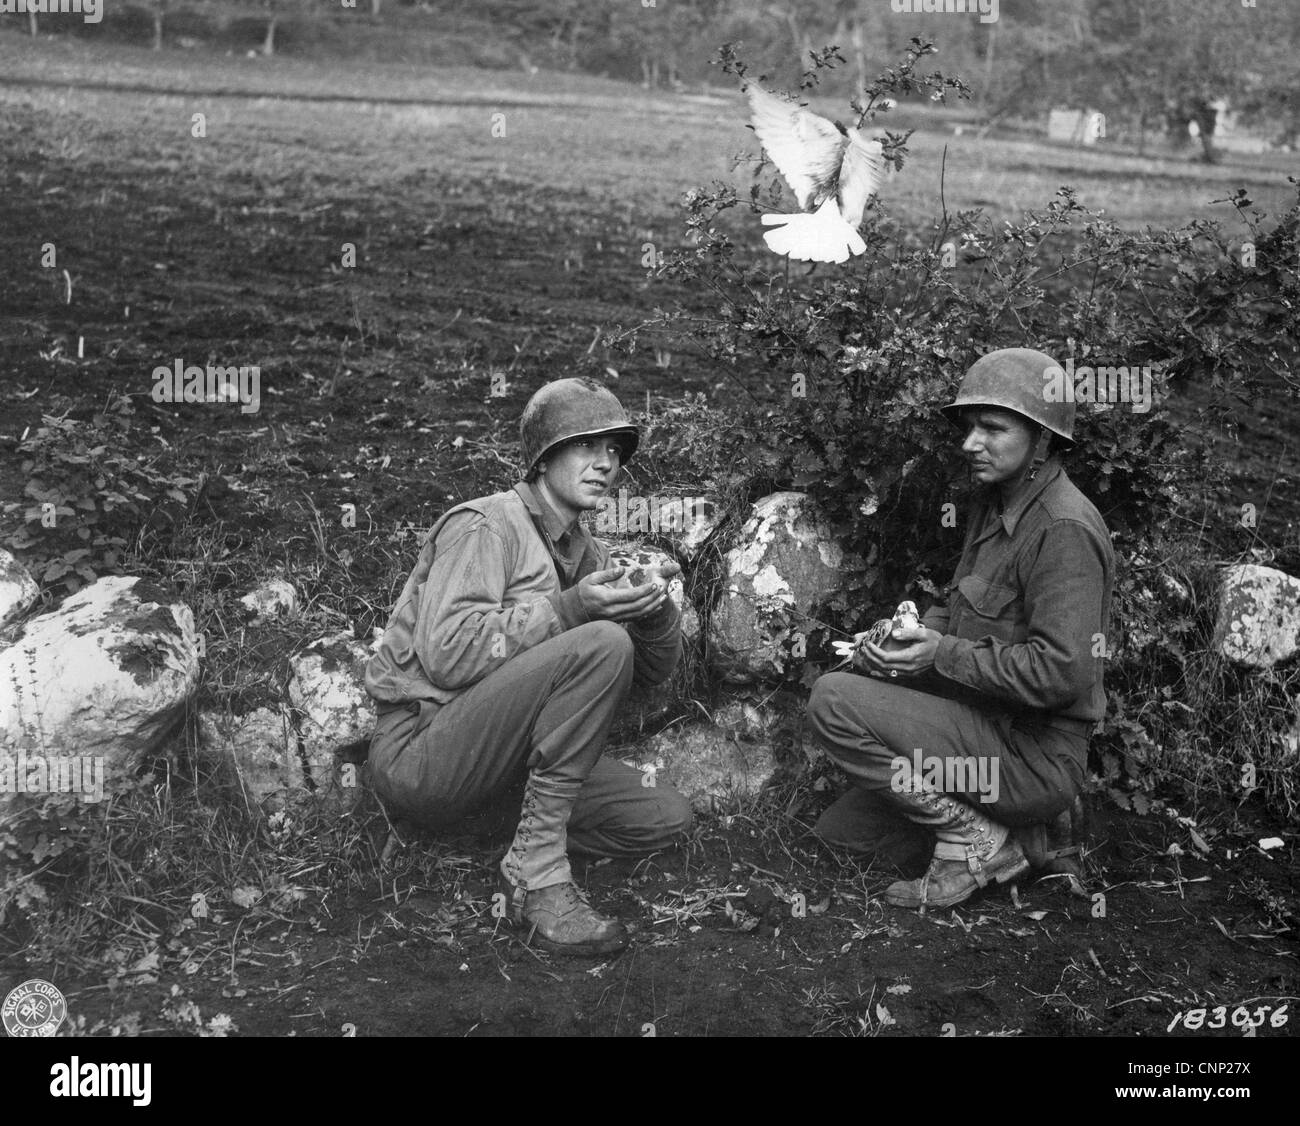 American soldiers Divisional Signal Company releasing courier pigeons frontline during World War Two near Liberi - Stock Image